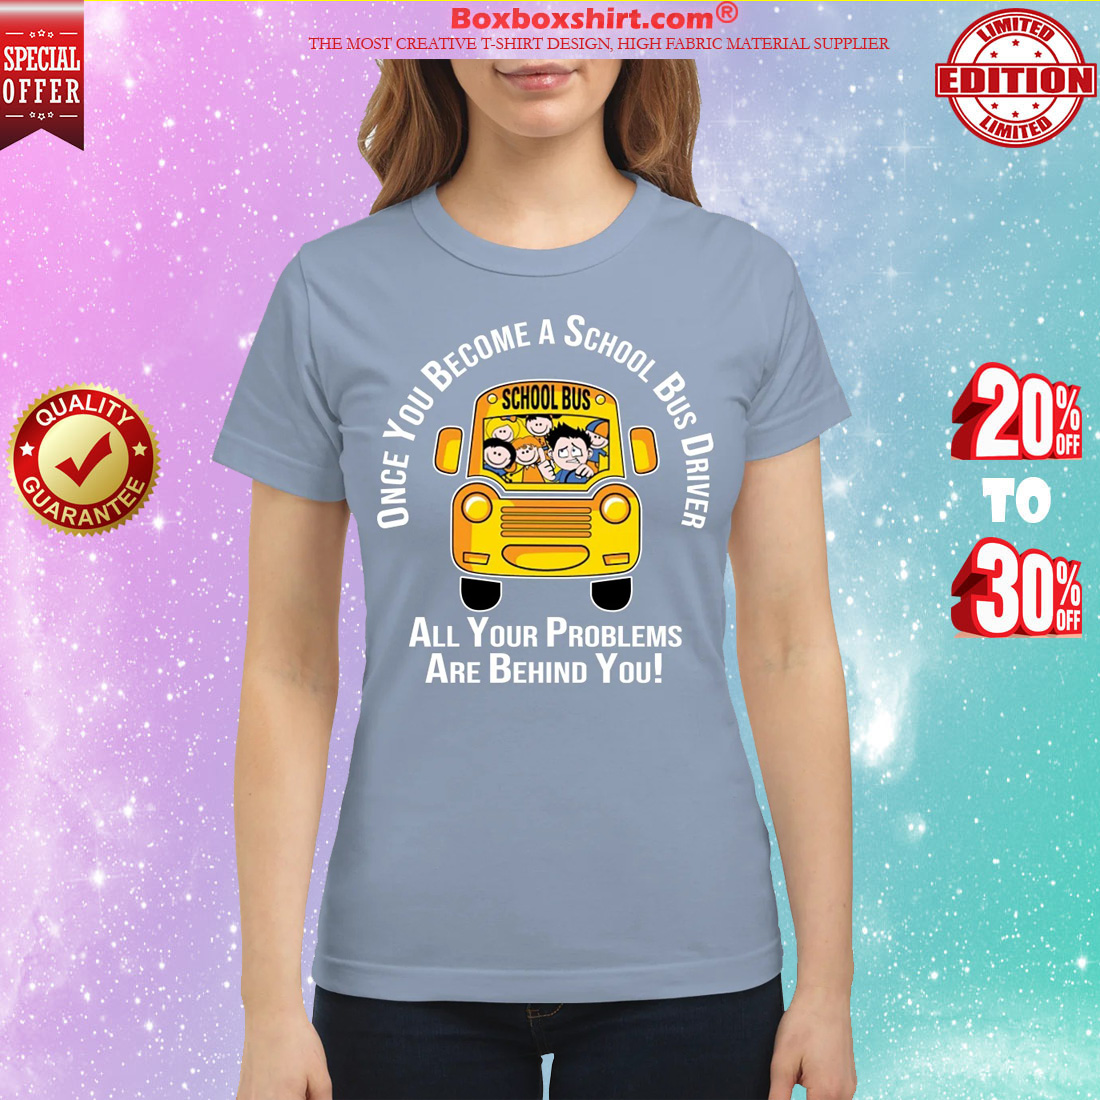 Once you become a school bus driver all your problems are behind you classic shirt